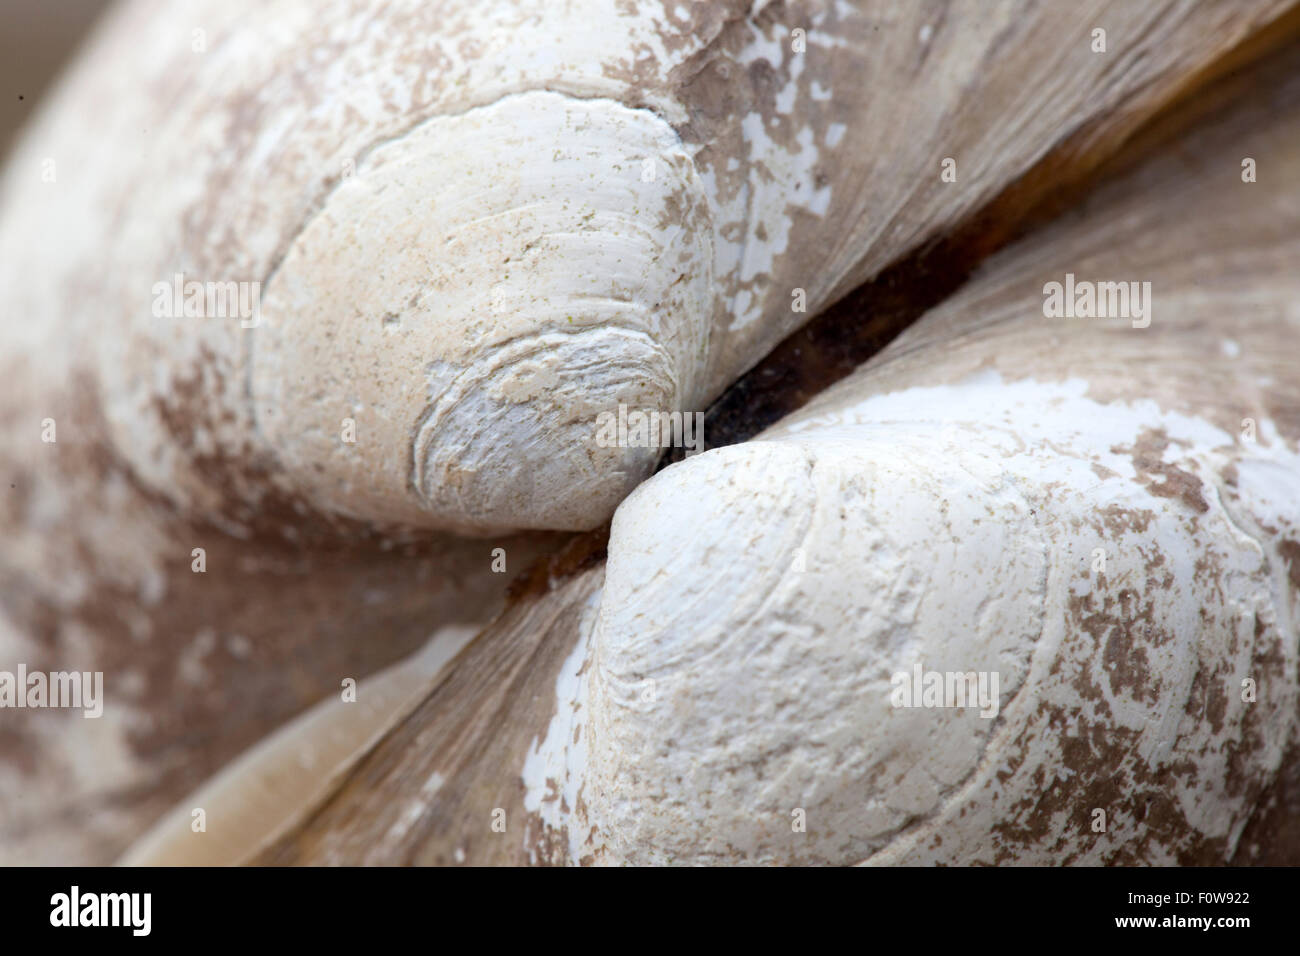 hinge of clam shell - Stock Image